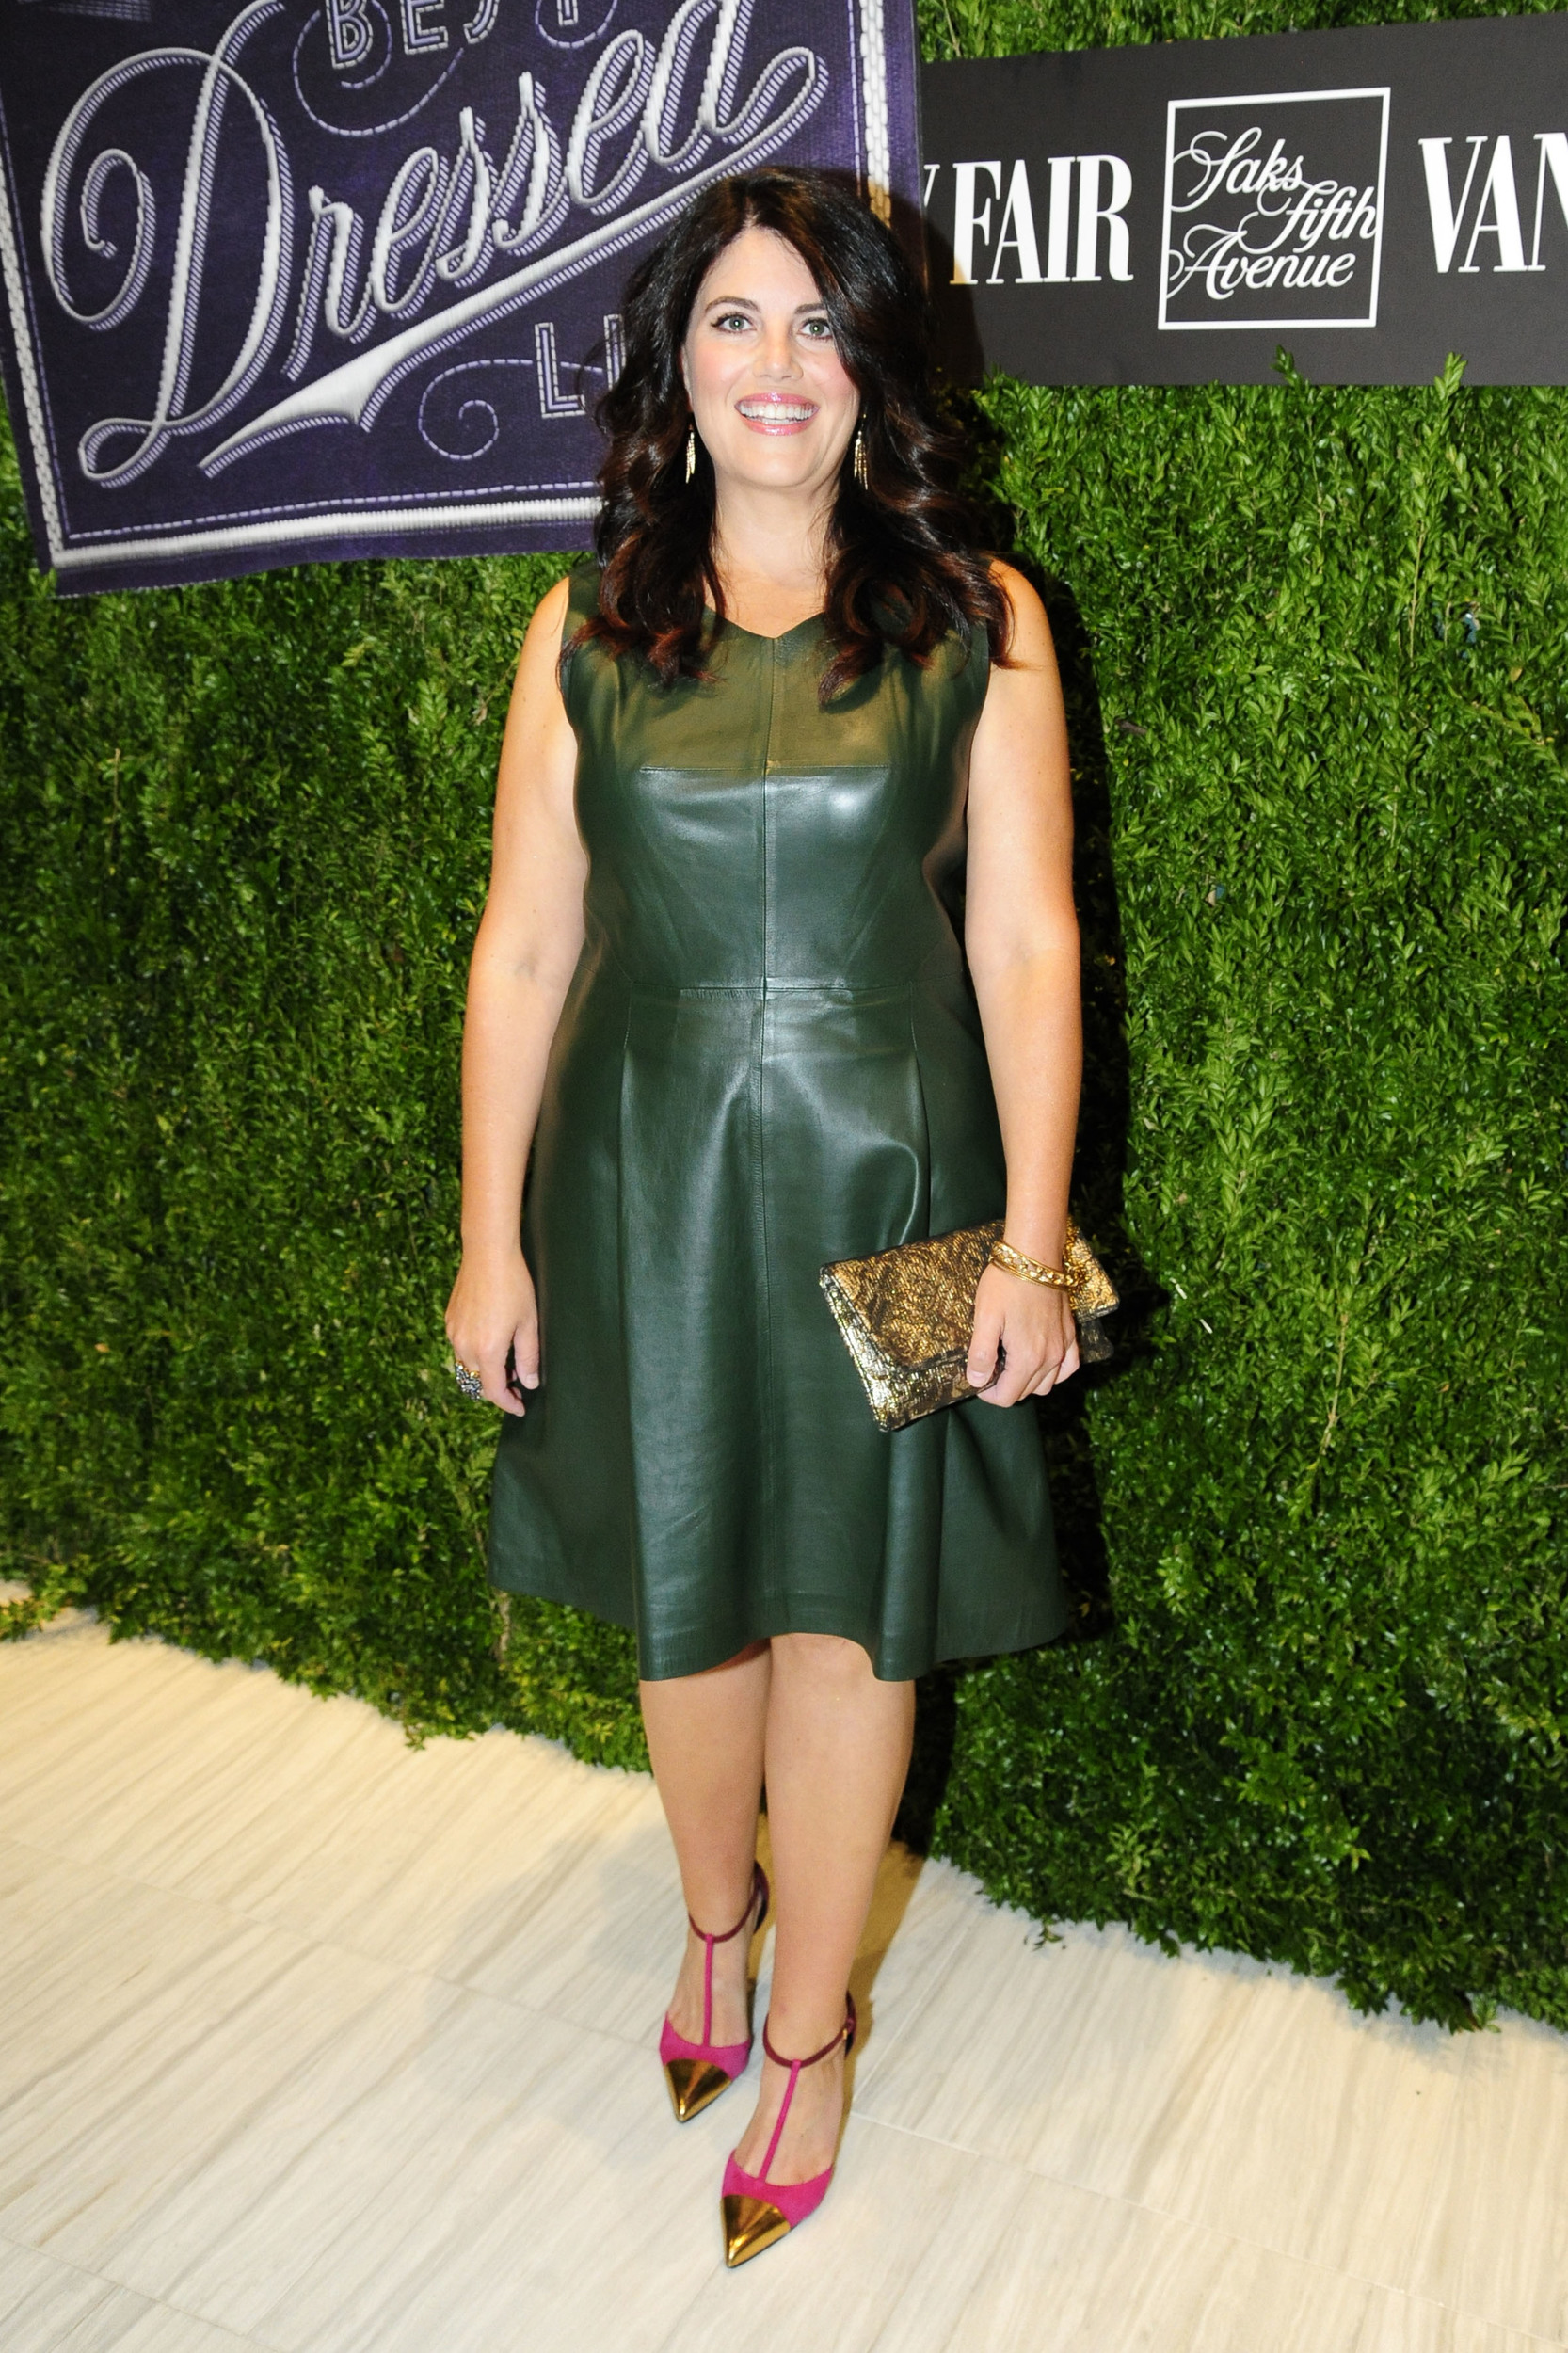 Monica Lewinsky Turns Heads In A Glam Look AOL Entertainment